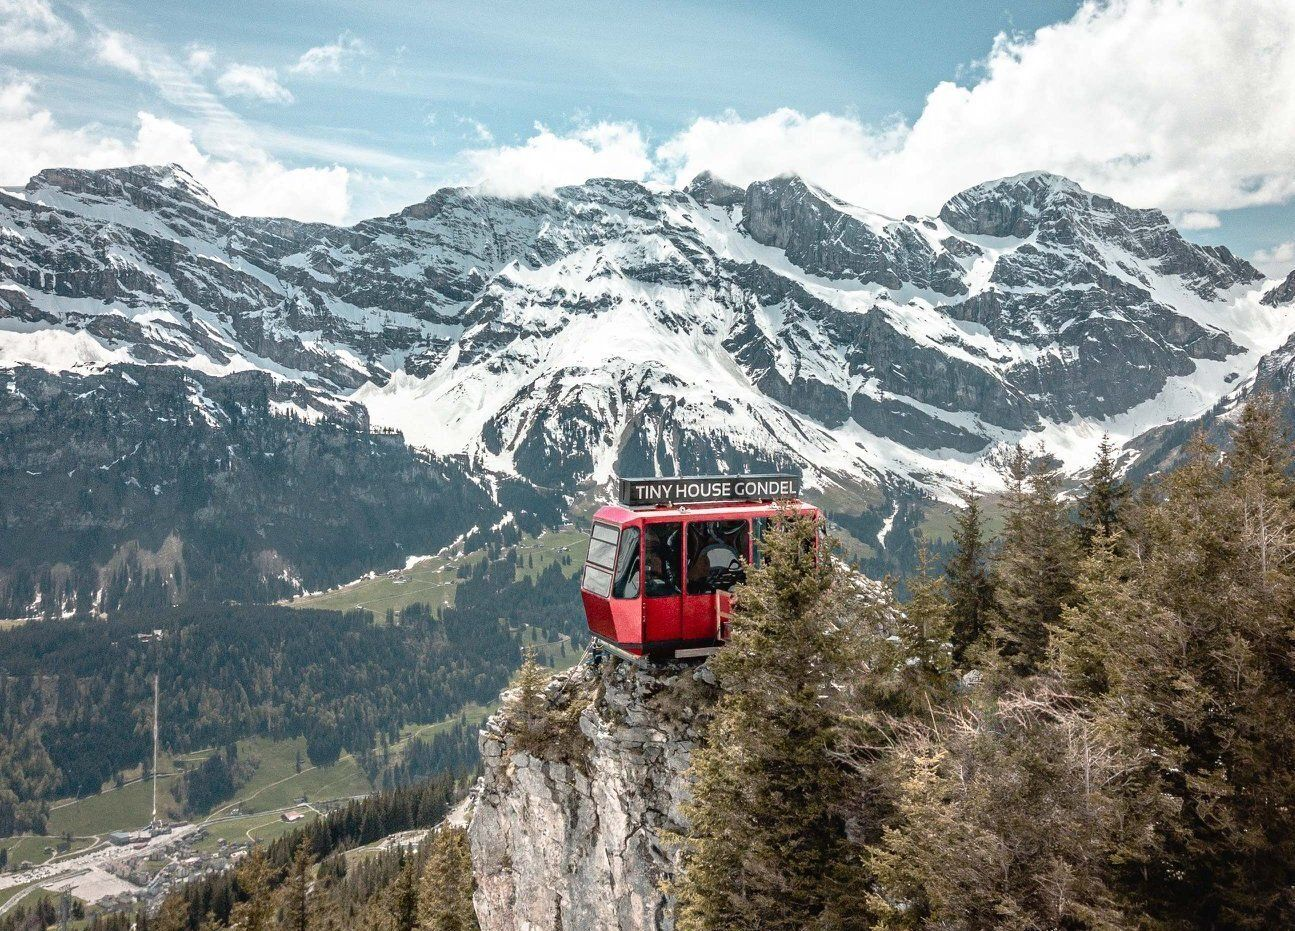 Tiny House Gondel, Brunni in Switzerland is a great place to stay for epic views, Switzerland views